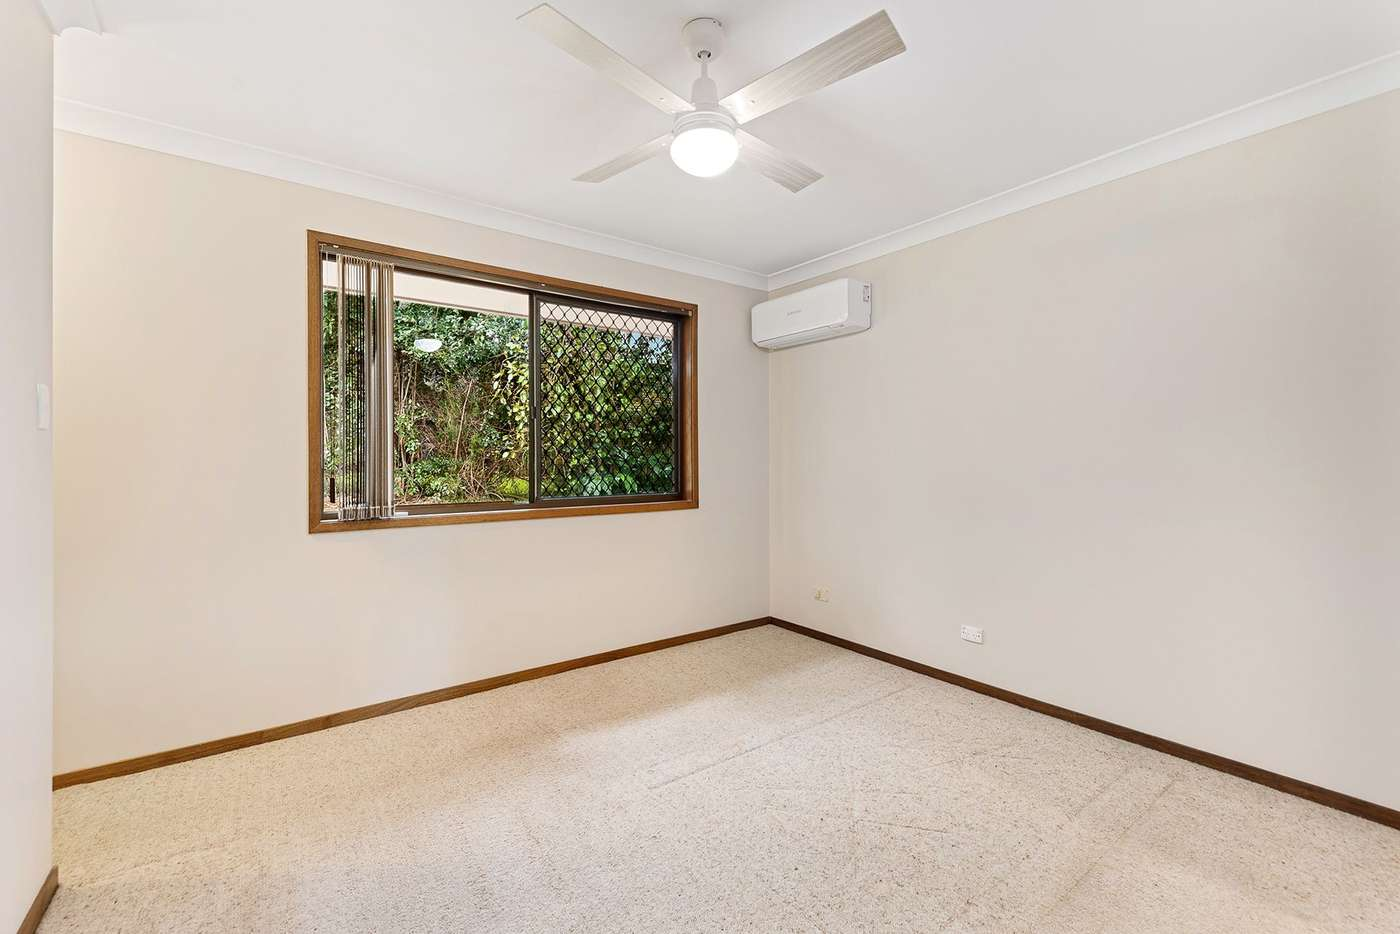 Seventh view of Homely house listing, 18-20 Arenga Drive, Tamborine Mountain QLD 4272